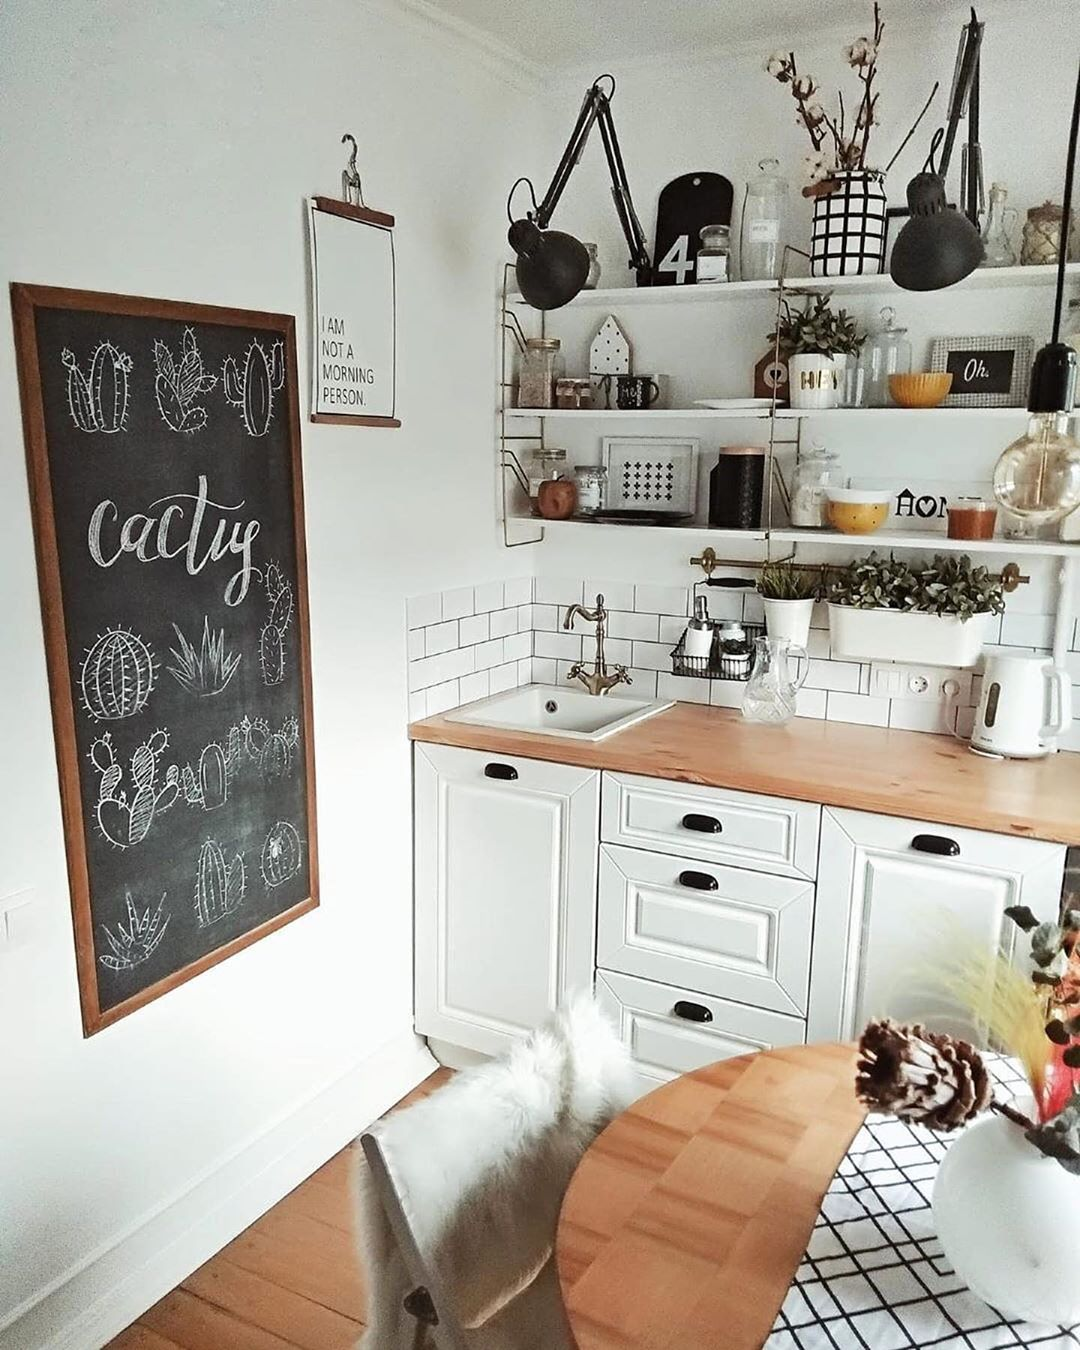 20-small-kitchen-ideas-ideas-to-open-your-compact-room-2019